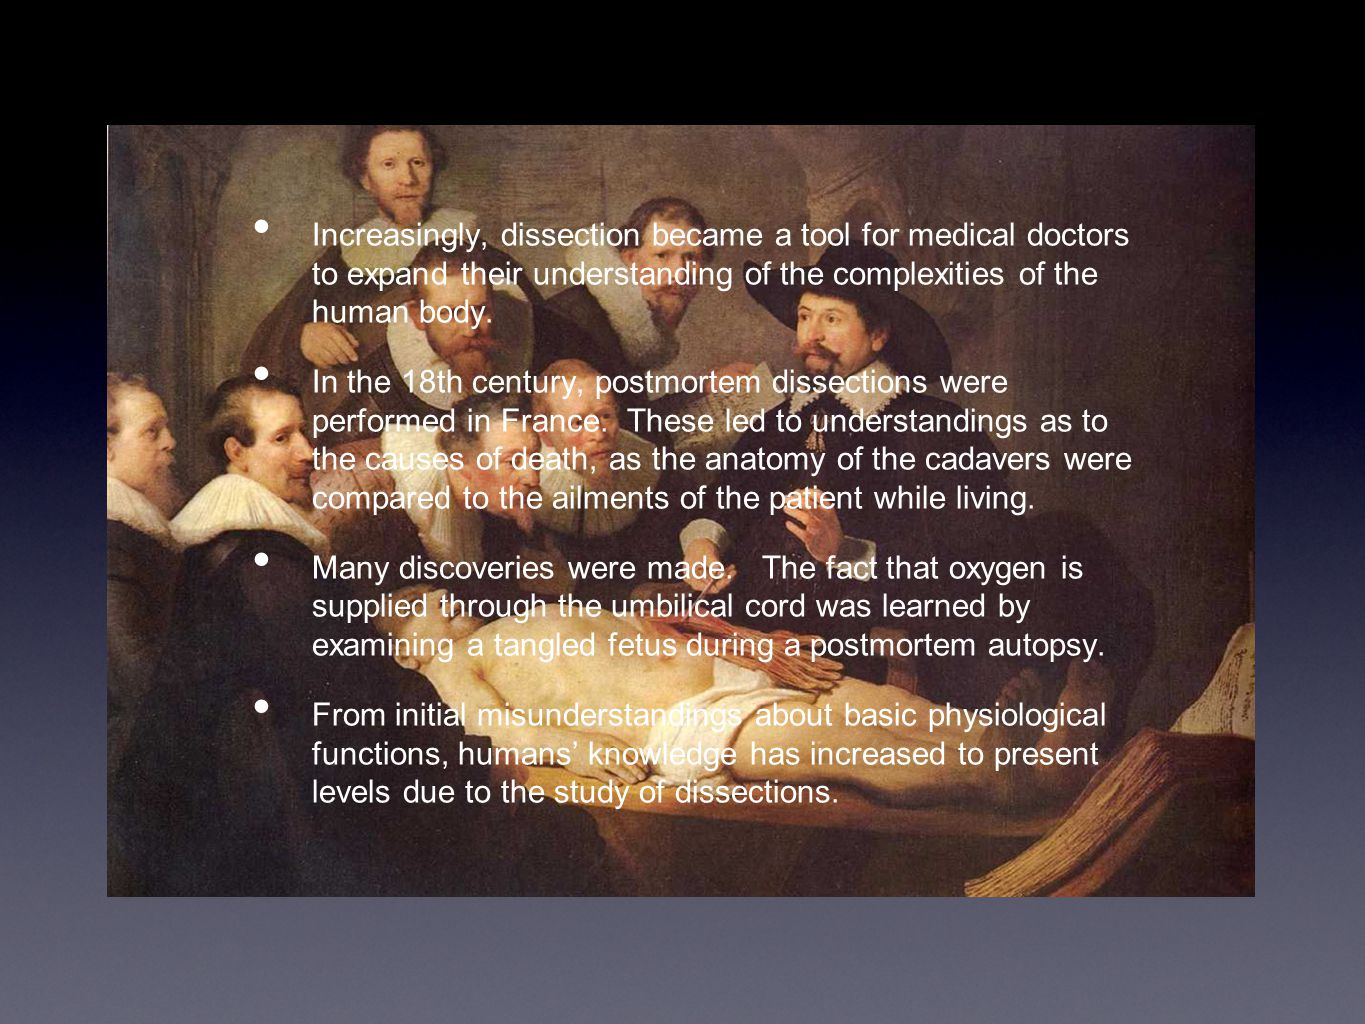 Increasingly, dissection became a tool for medical doctors to expand their understanding of the complexities of the human body. In the 18th century, p